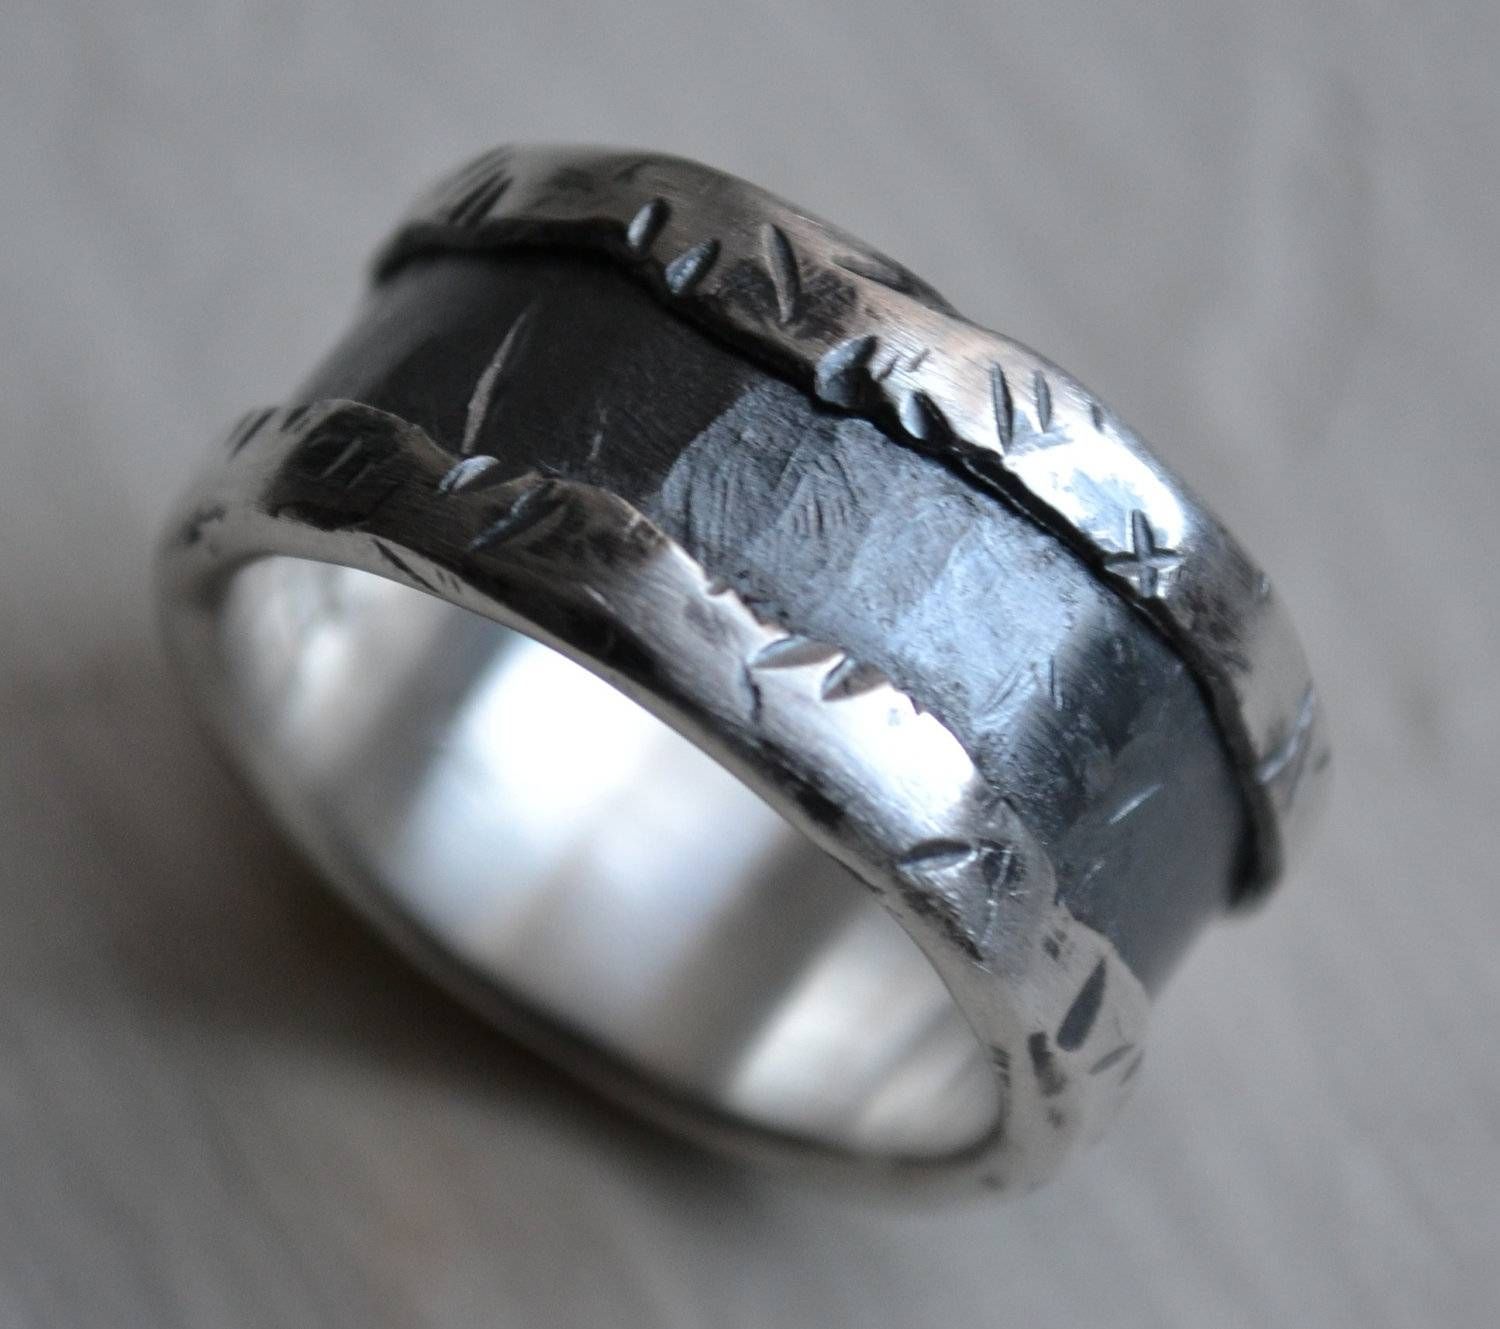 Photo Gallery of Weird Wedding Rings Viewing 4 of 15 Photos